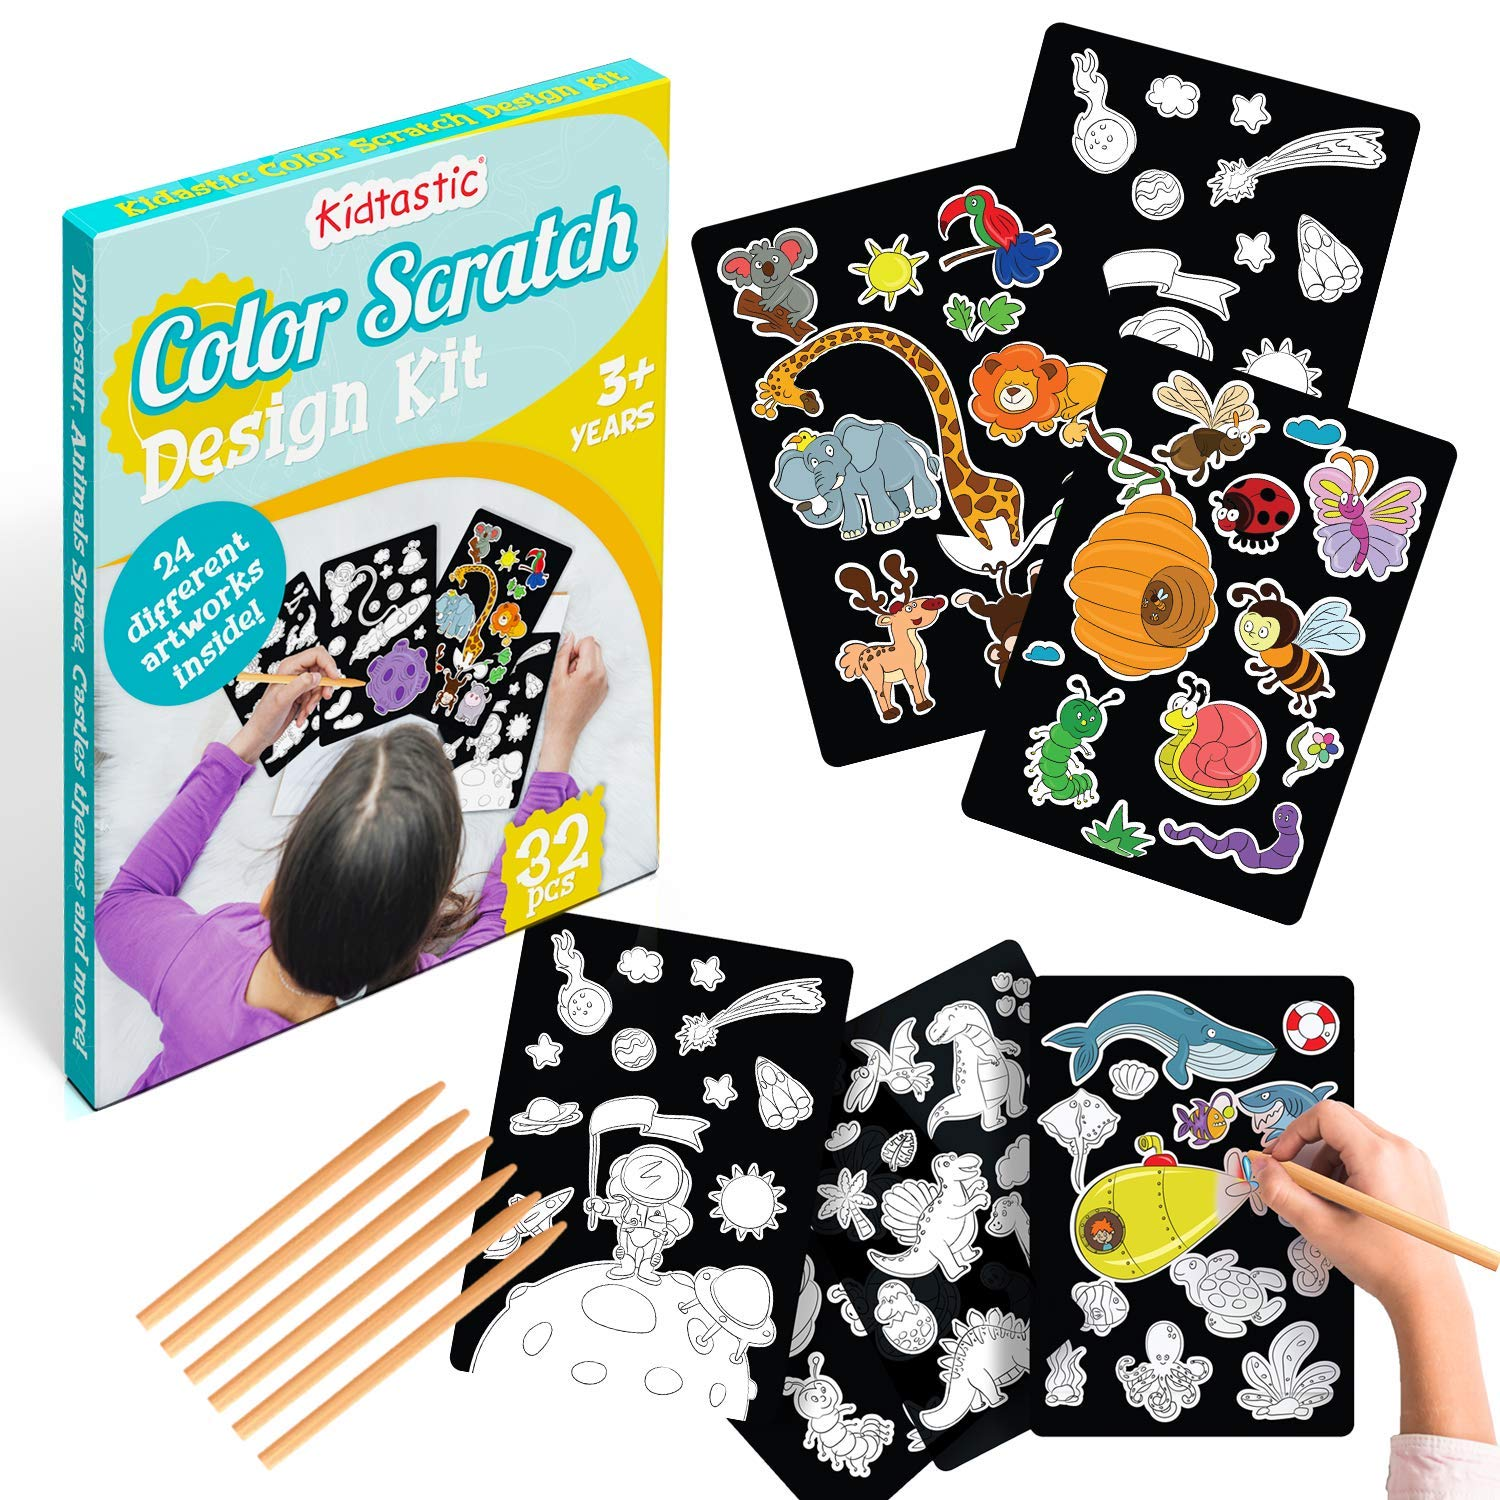 Kidtastic Scratch Art 24 Original Full Color Illustrations - 30 Piece Rainbow Scratch Pads which Dinosaur, Animals & Castle Designs, Birthday Gifts for Girls Ages 3 and Up